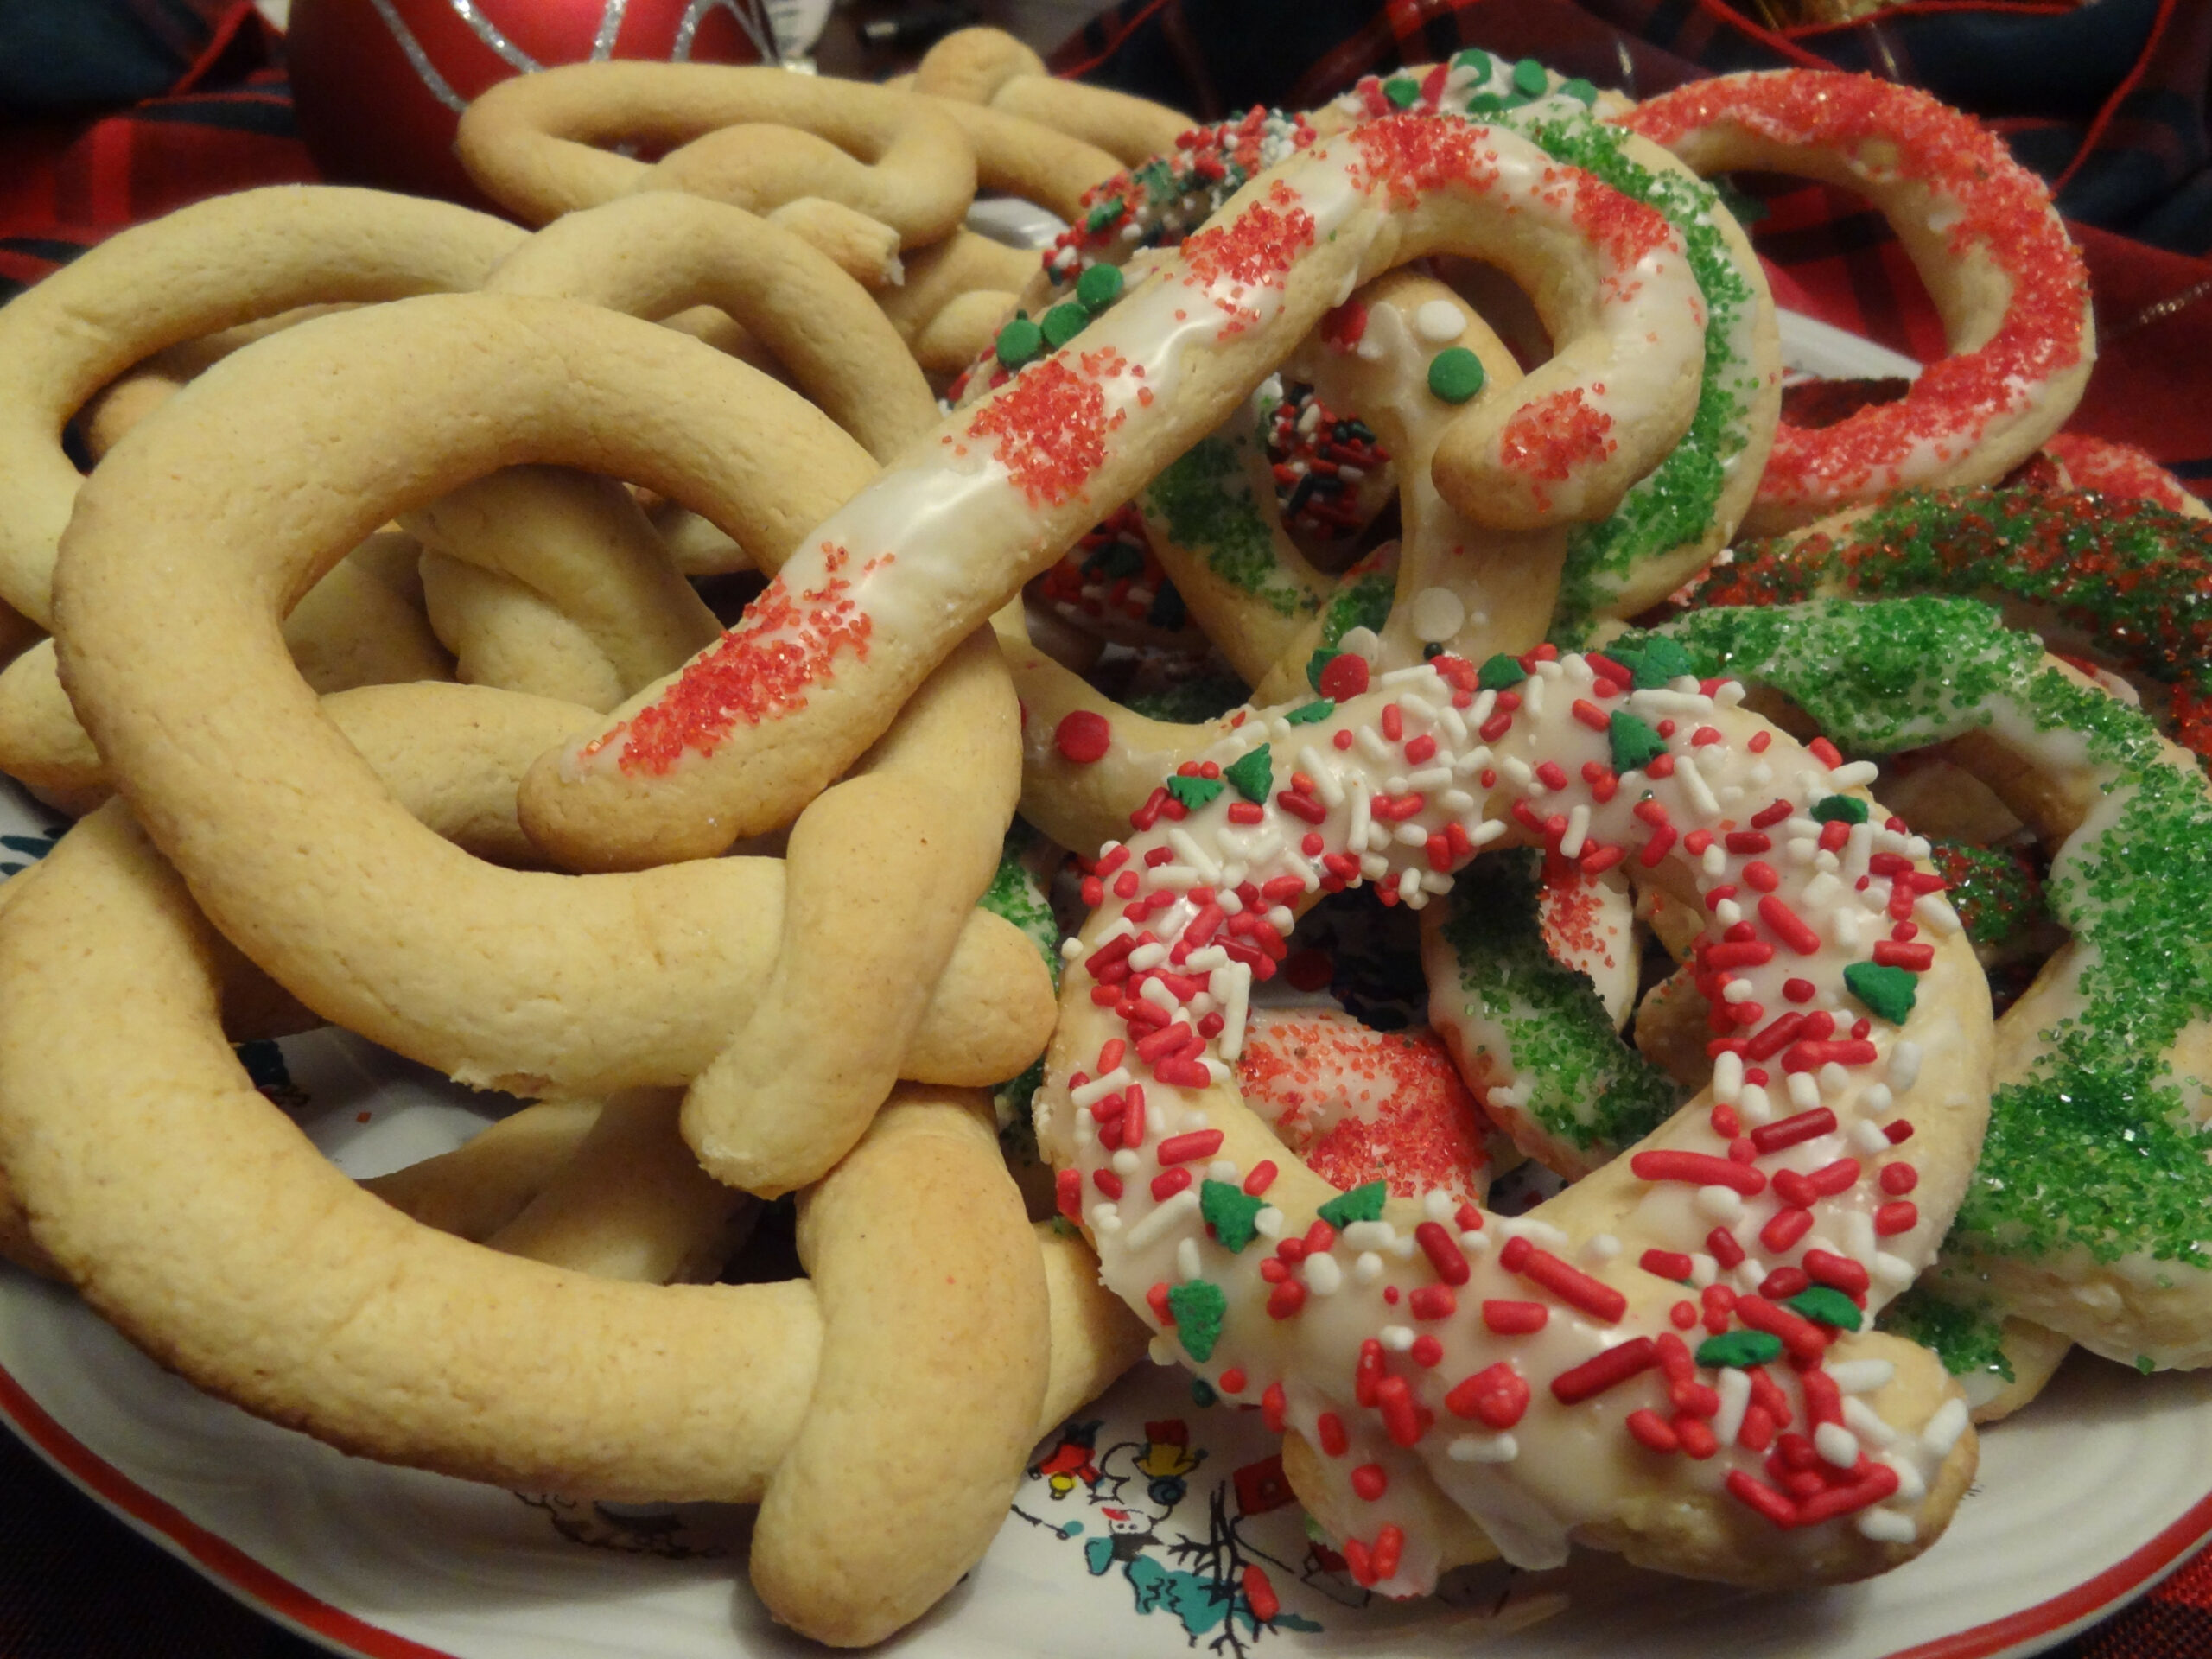 Biscoitos de Natal - Christmas Biscuit Cookies - portuguese food recipes